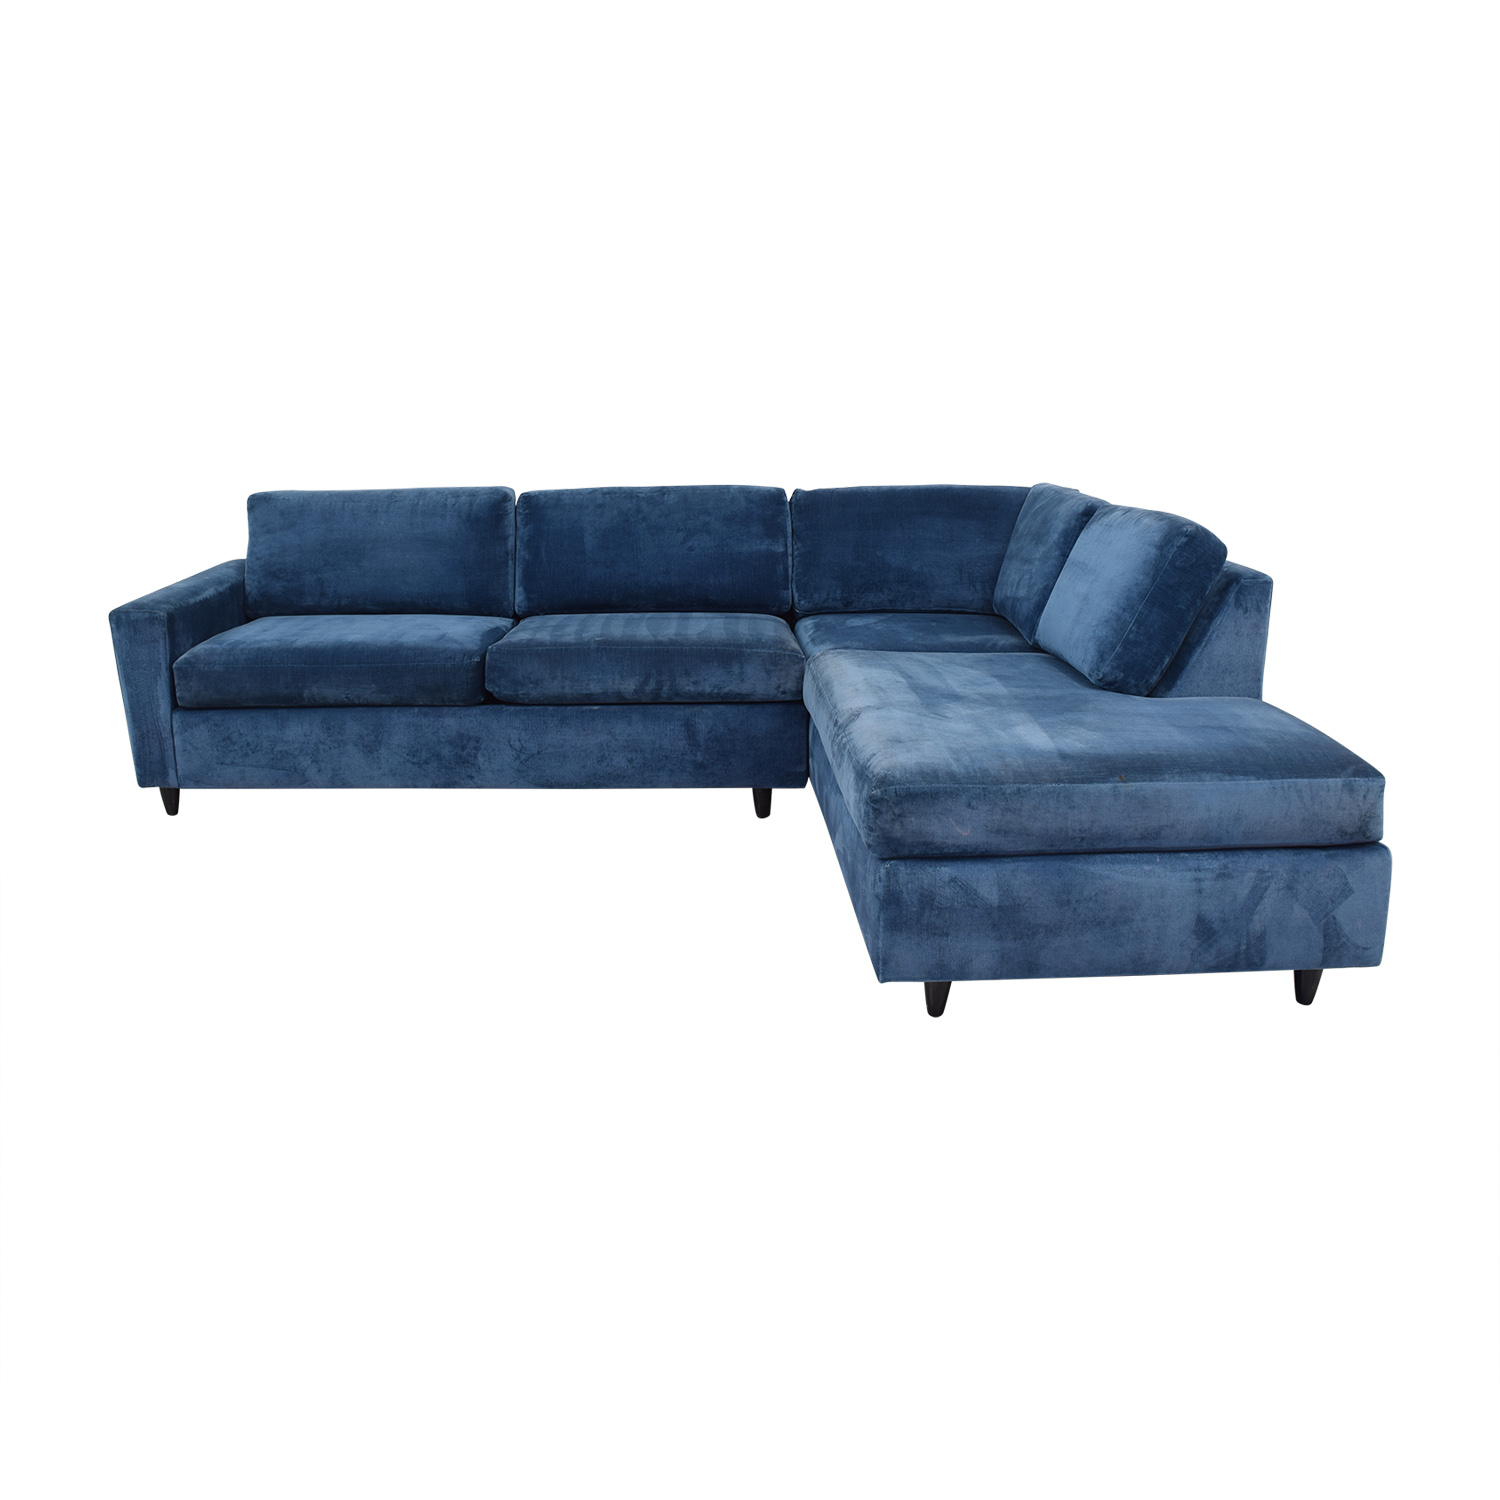 Jensen-Lewis Jensen-Lewis Sectional Sofa for sale